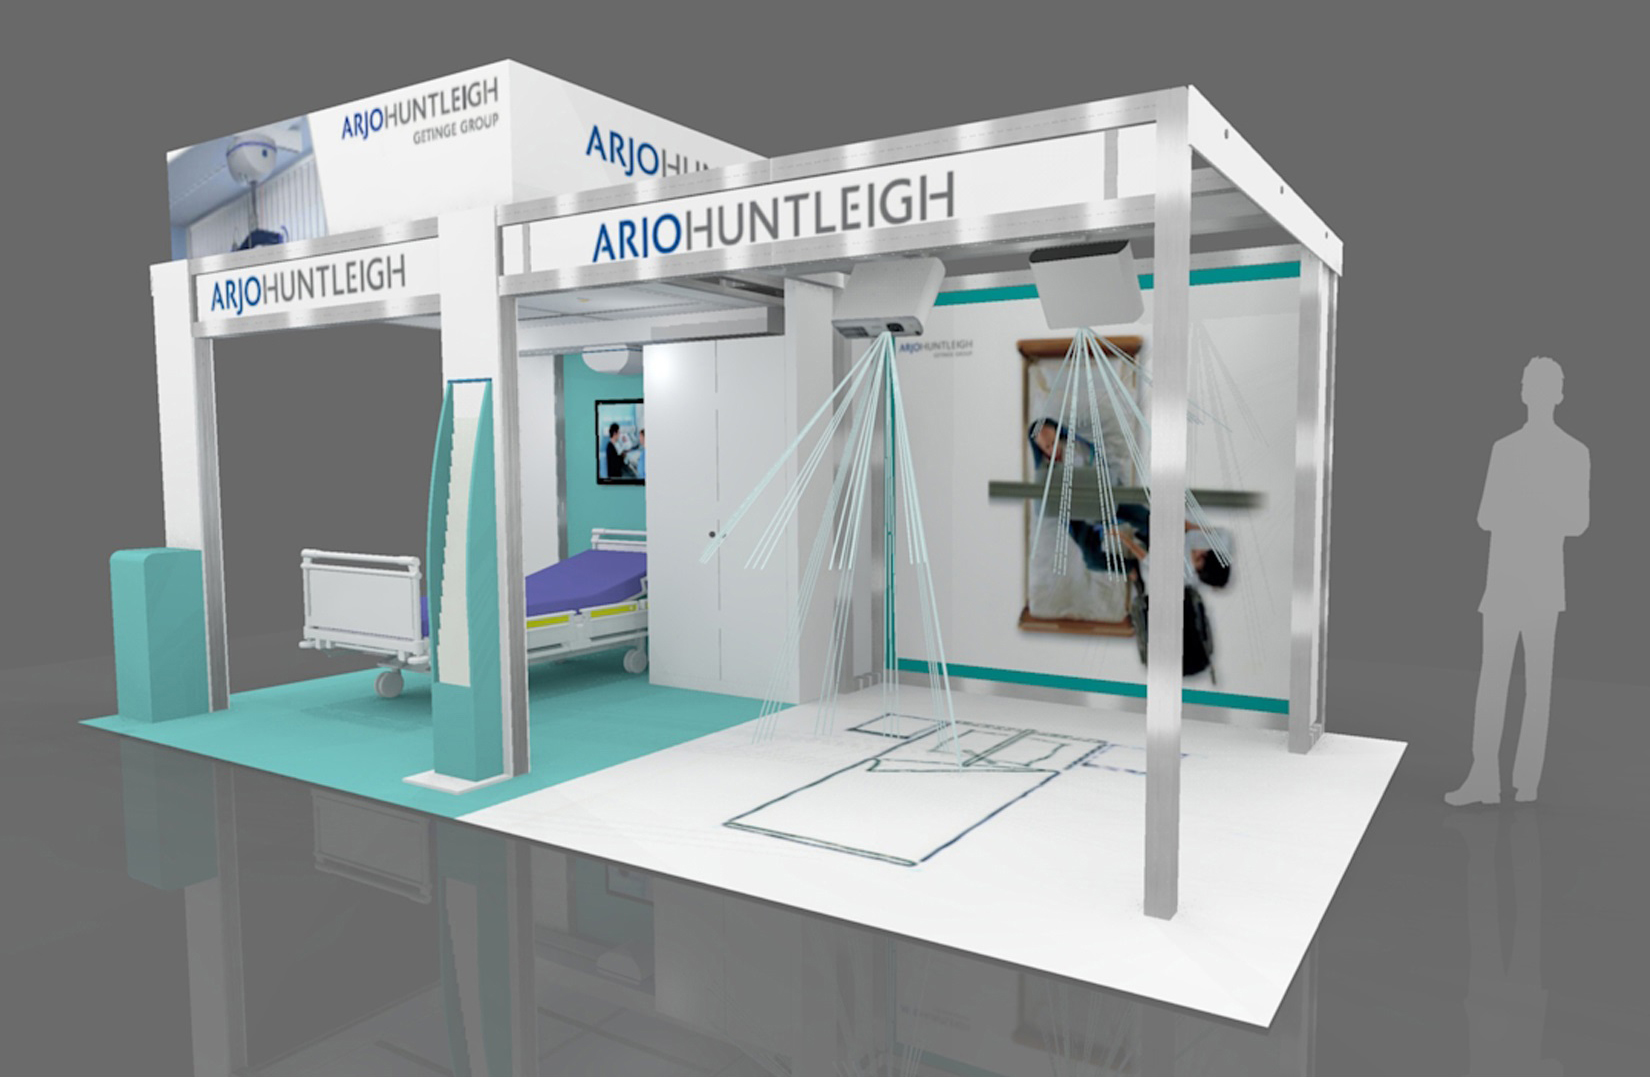 Arjohuntleigh 10x20 Custom Modular Exhibit BERLINdisplays collaborated with Archex